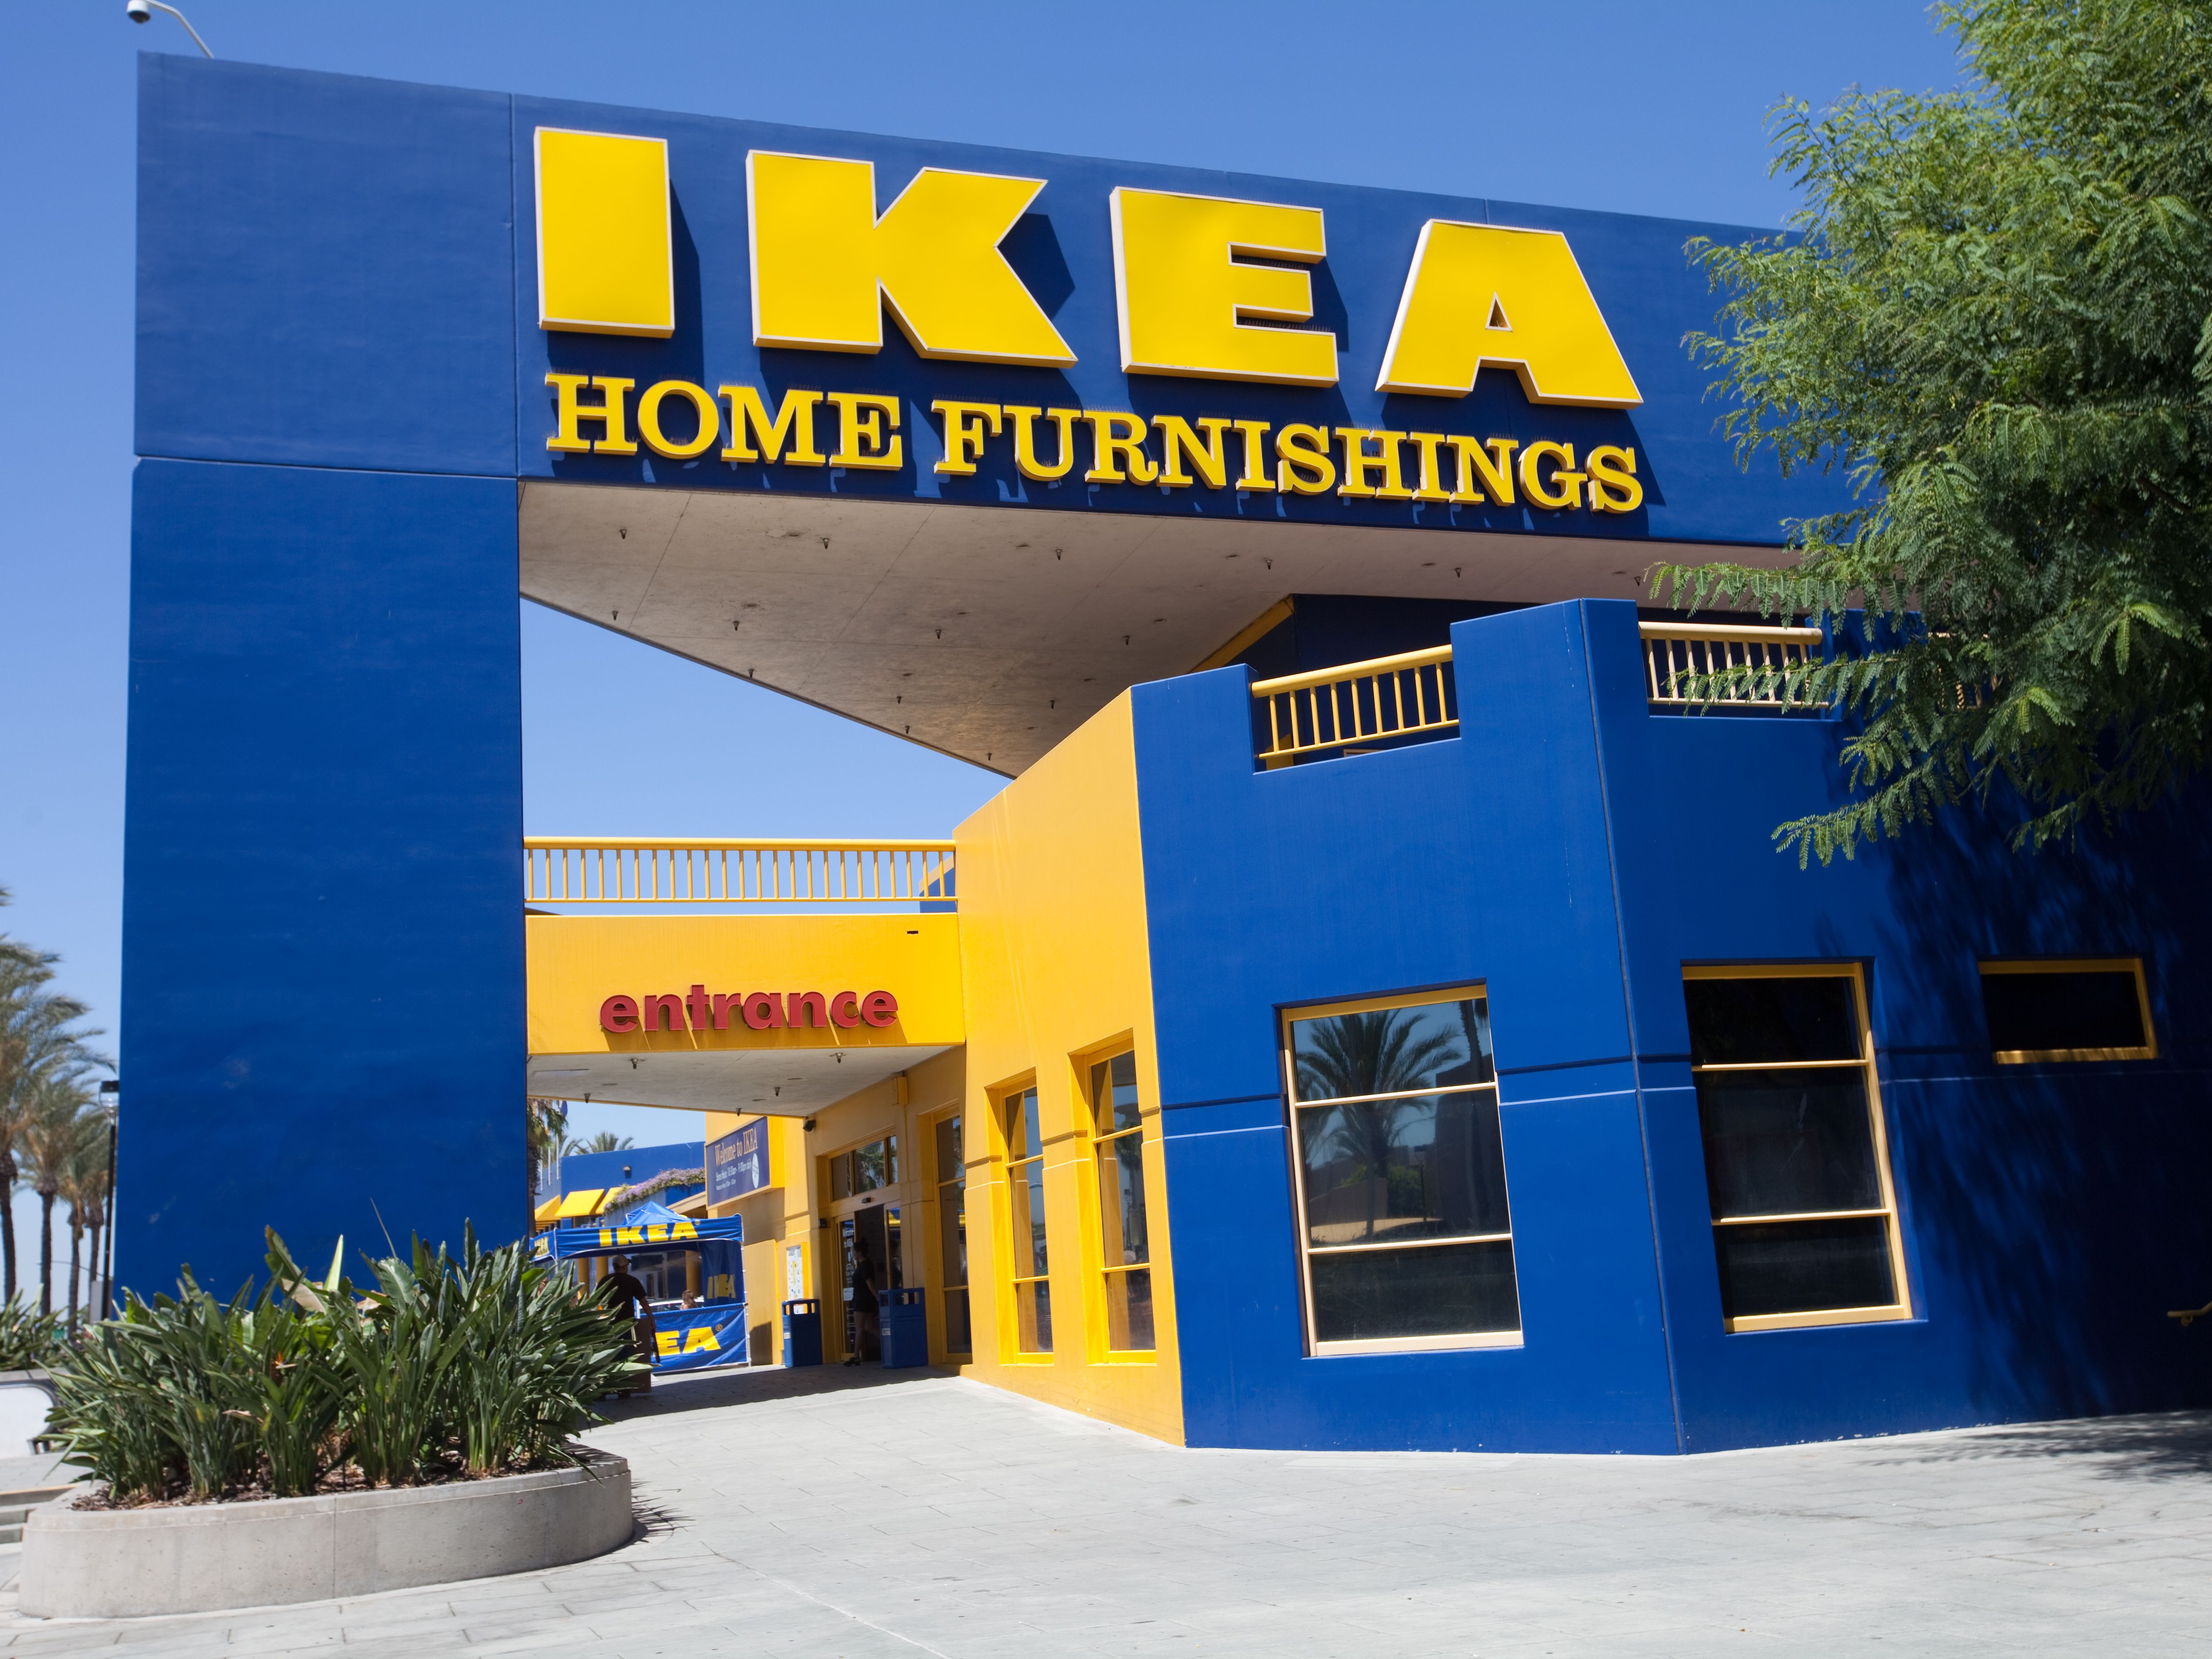 How To Get Free Stuff With Ikea